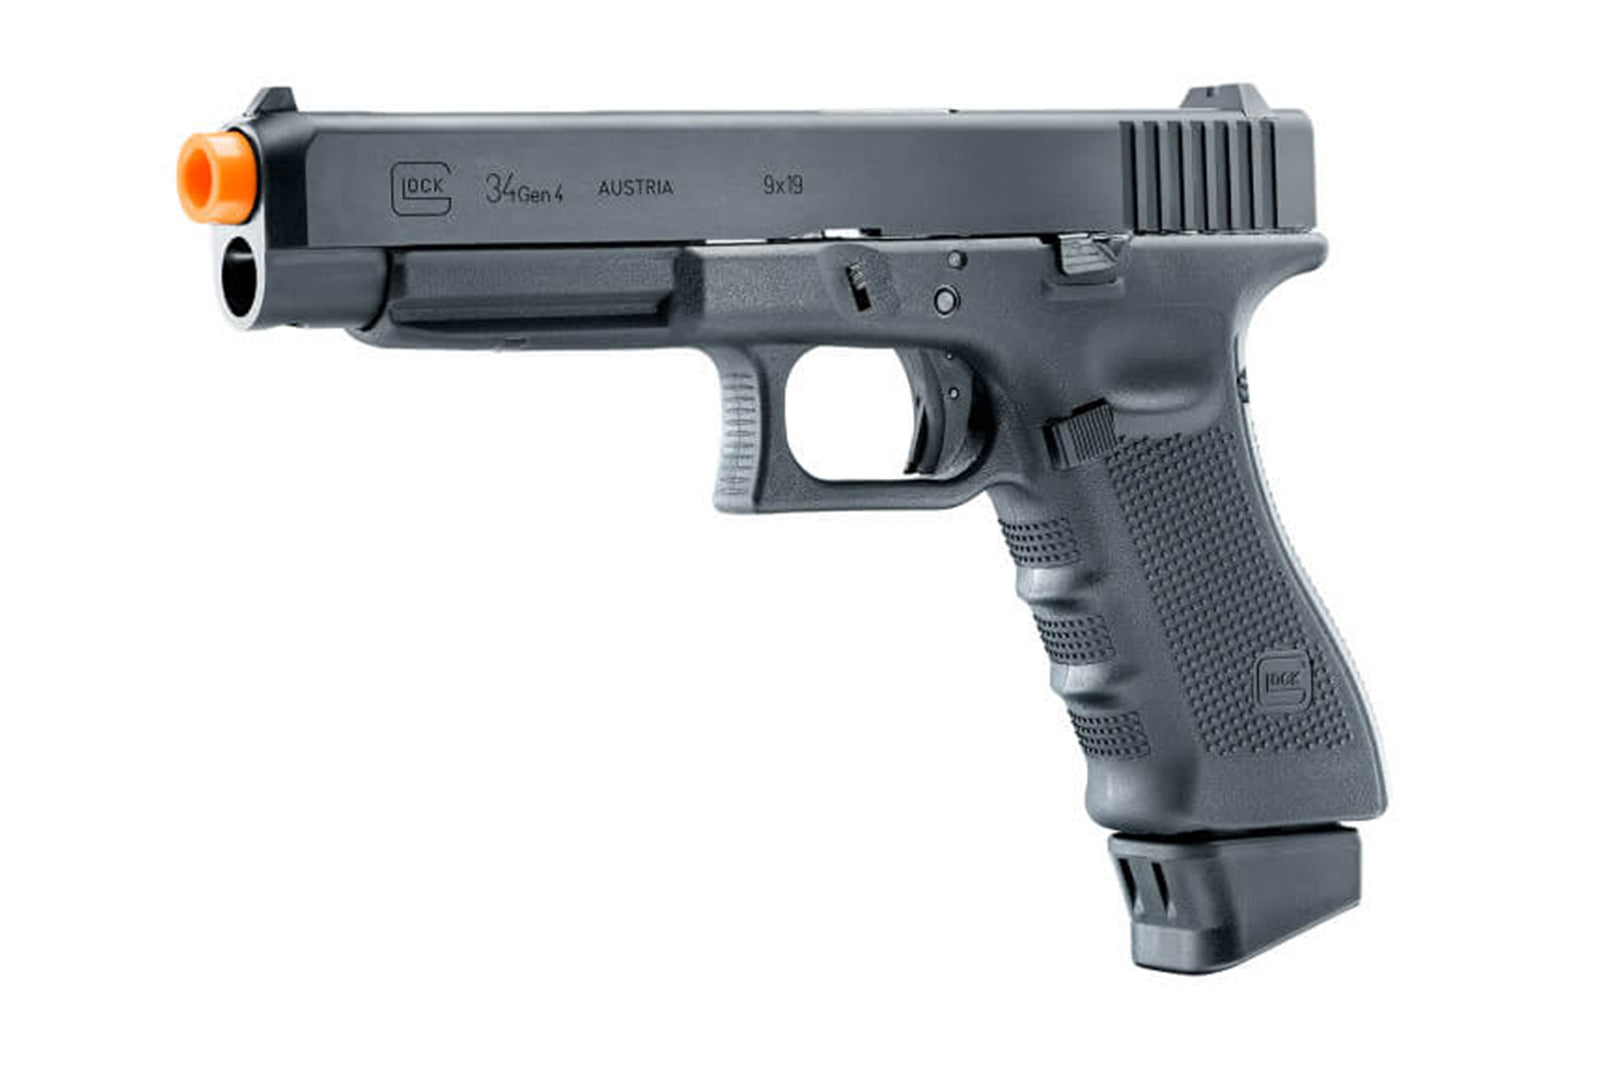 Elite Force Fully Licensed Deluxe GLOCK 34 Gen.4 Gas Blowback Airsoft Pistol